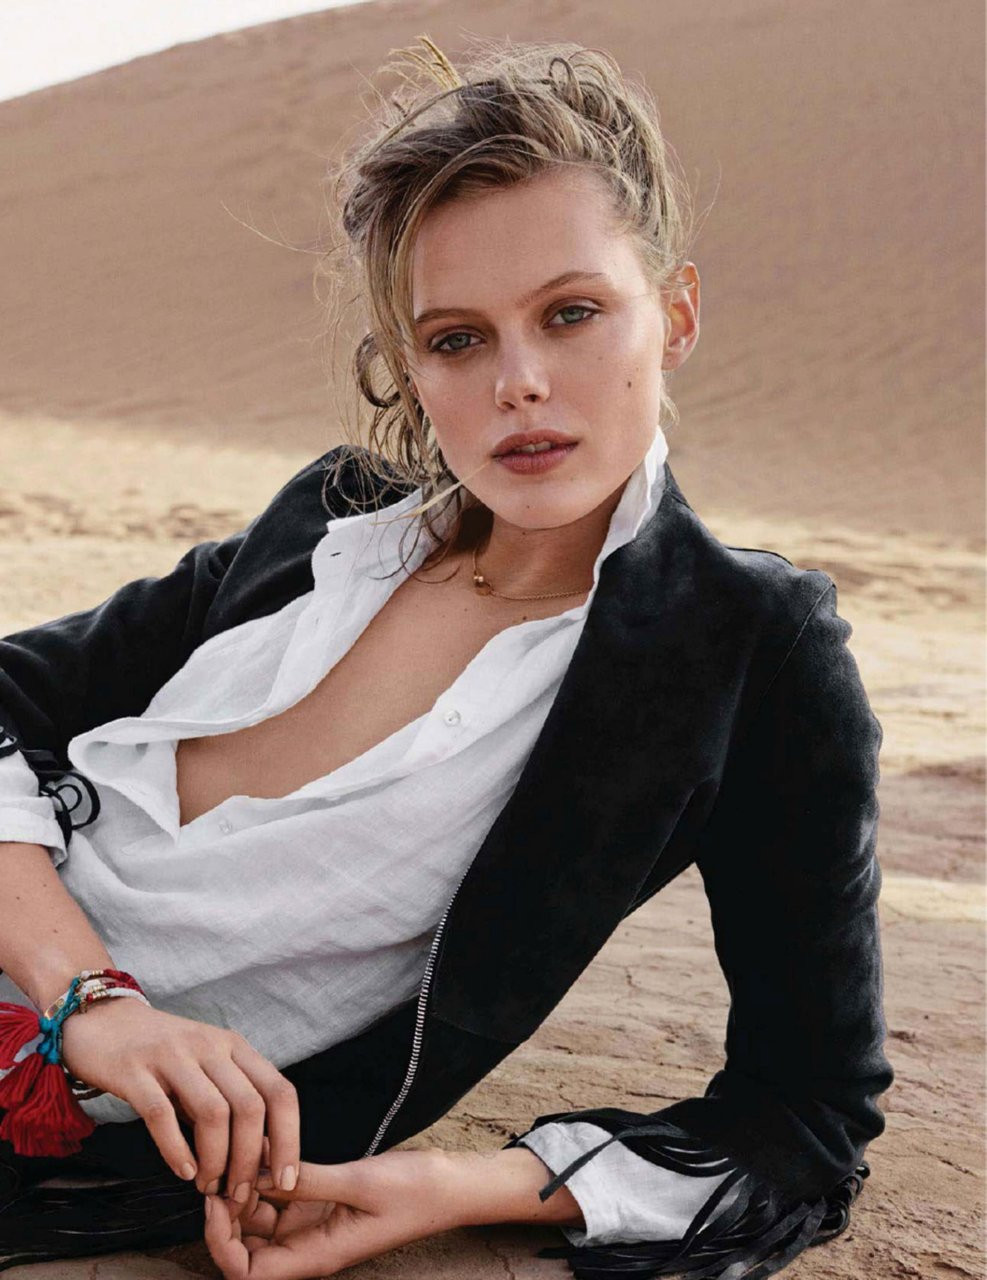 Frida Gustavsson Topless 09 TheFappening.nu